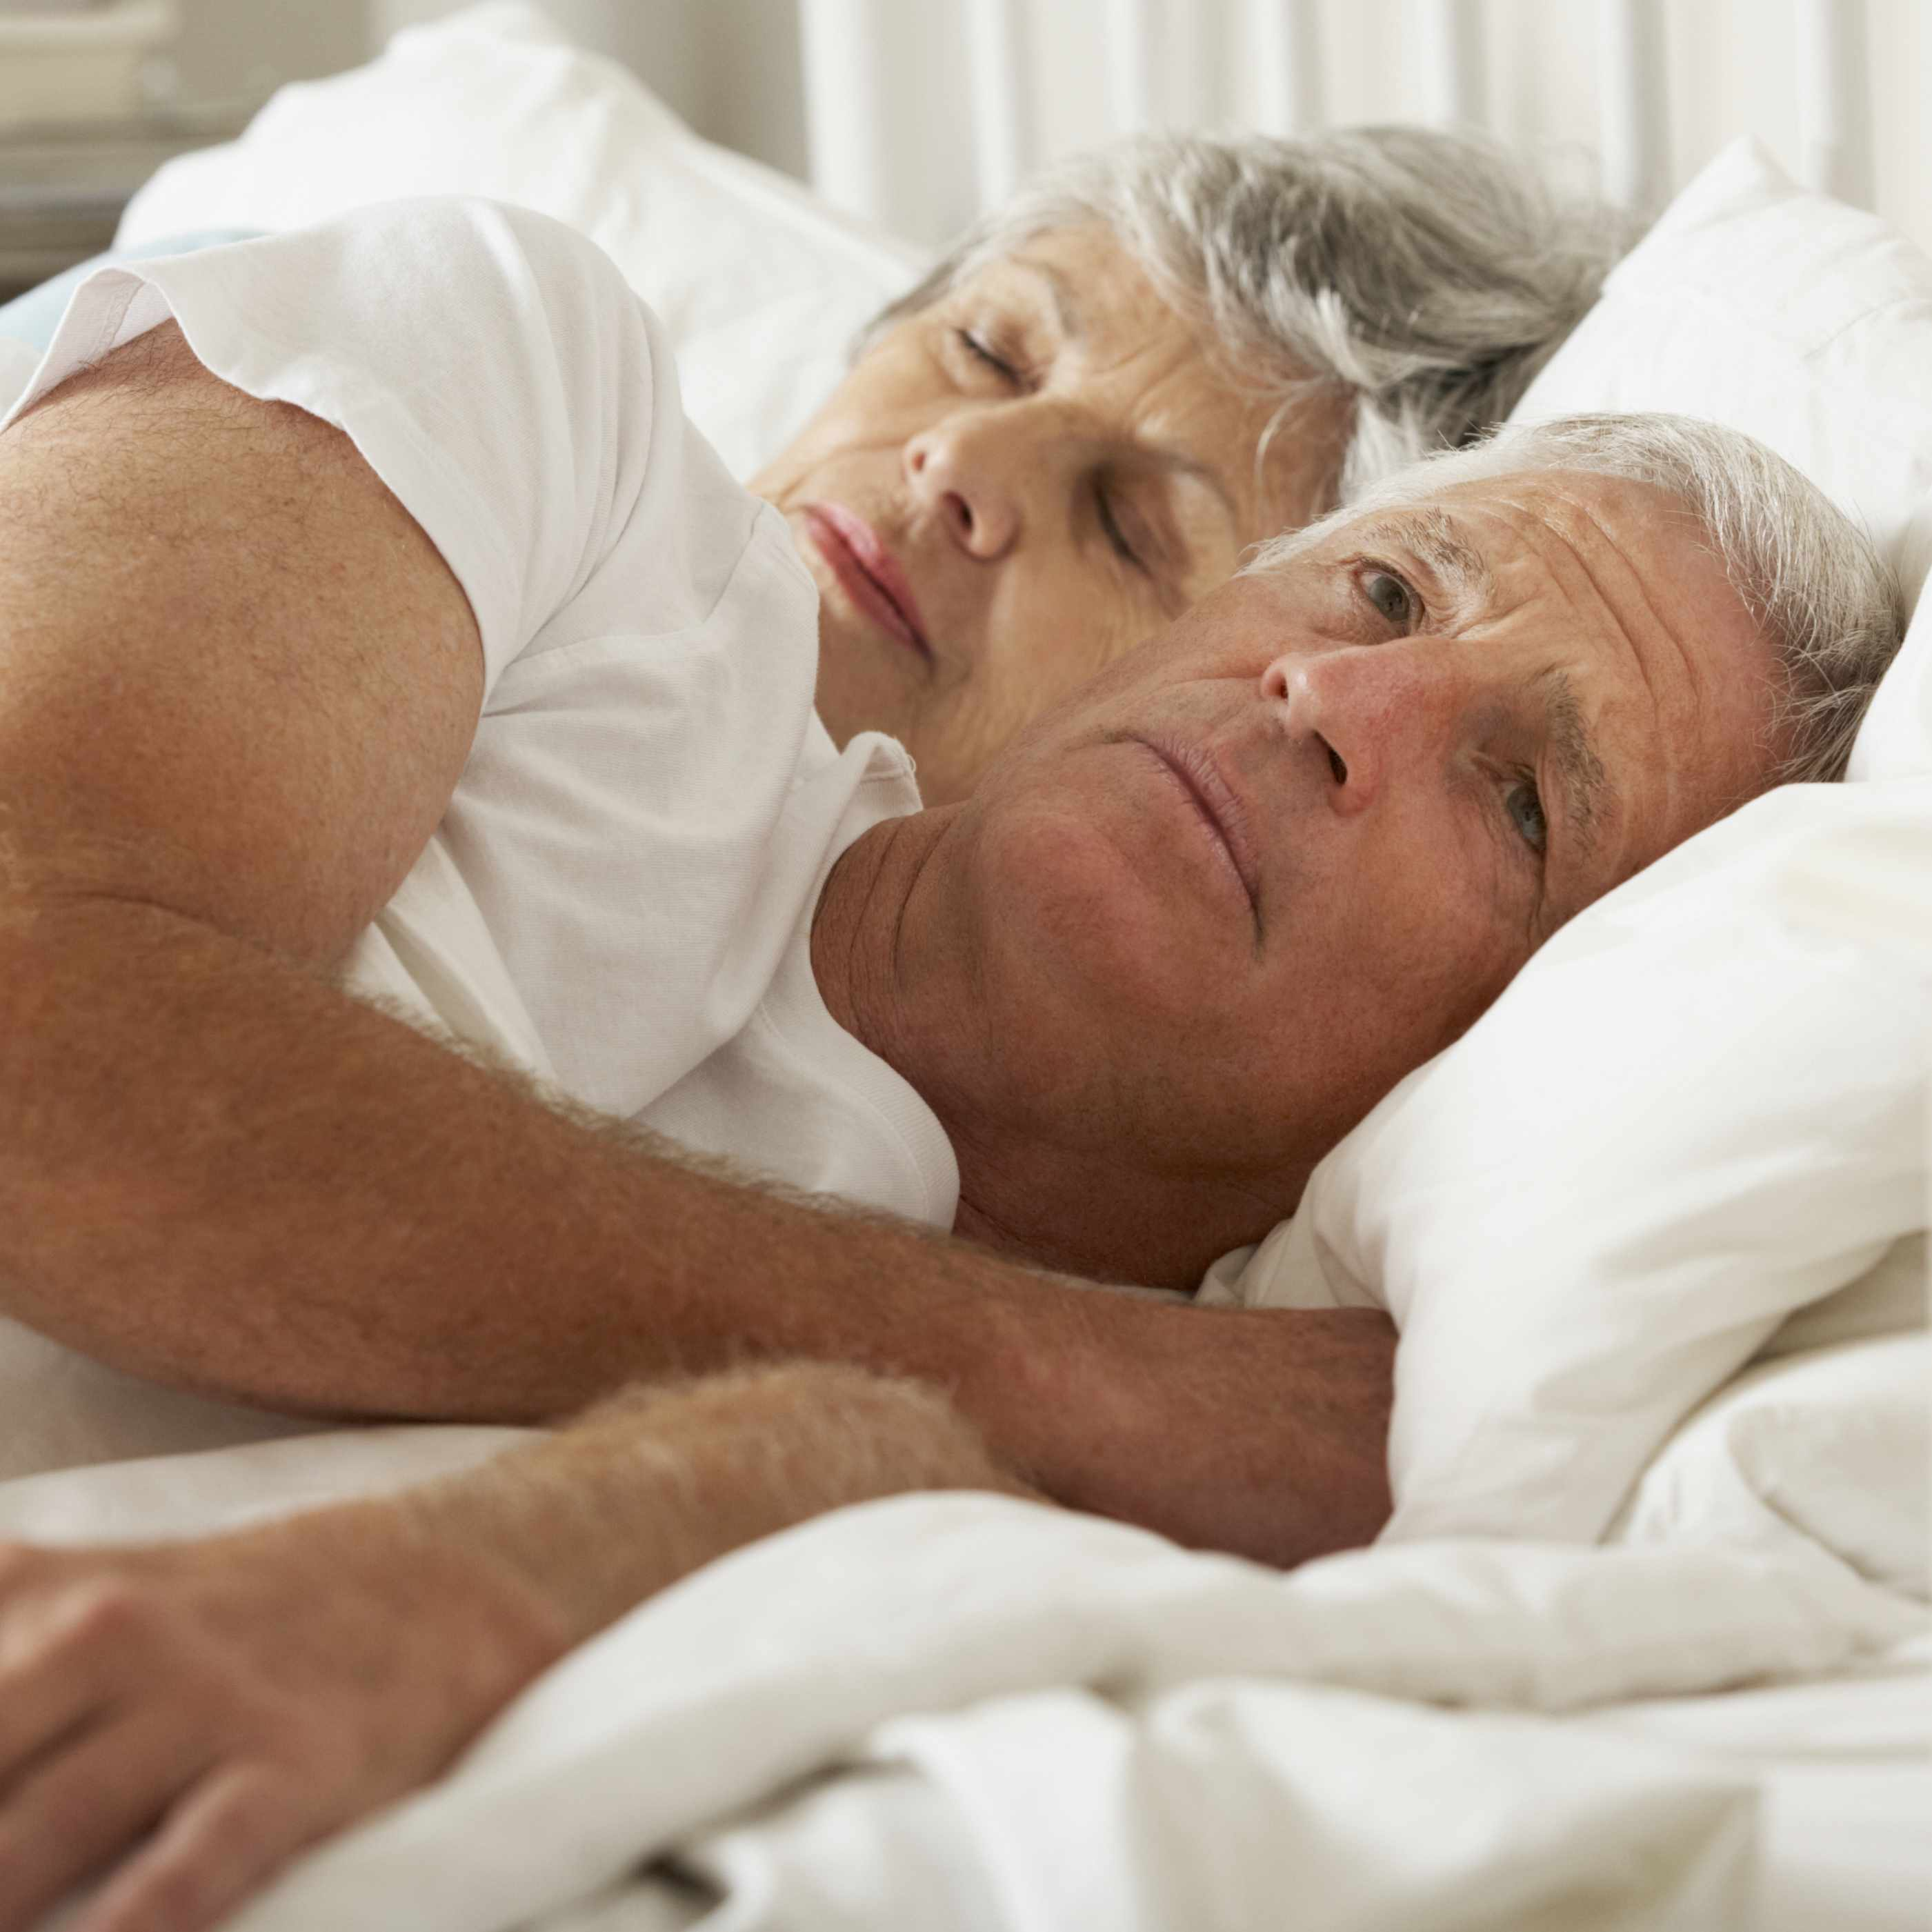 a woman sleeping in bed and a man laying awake